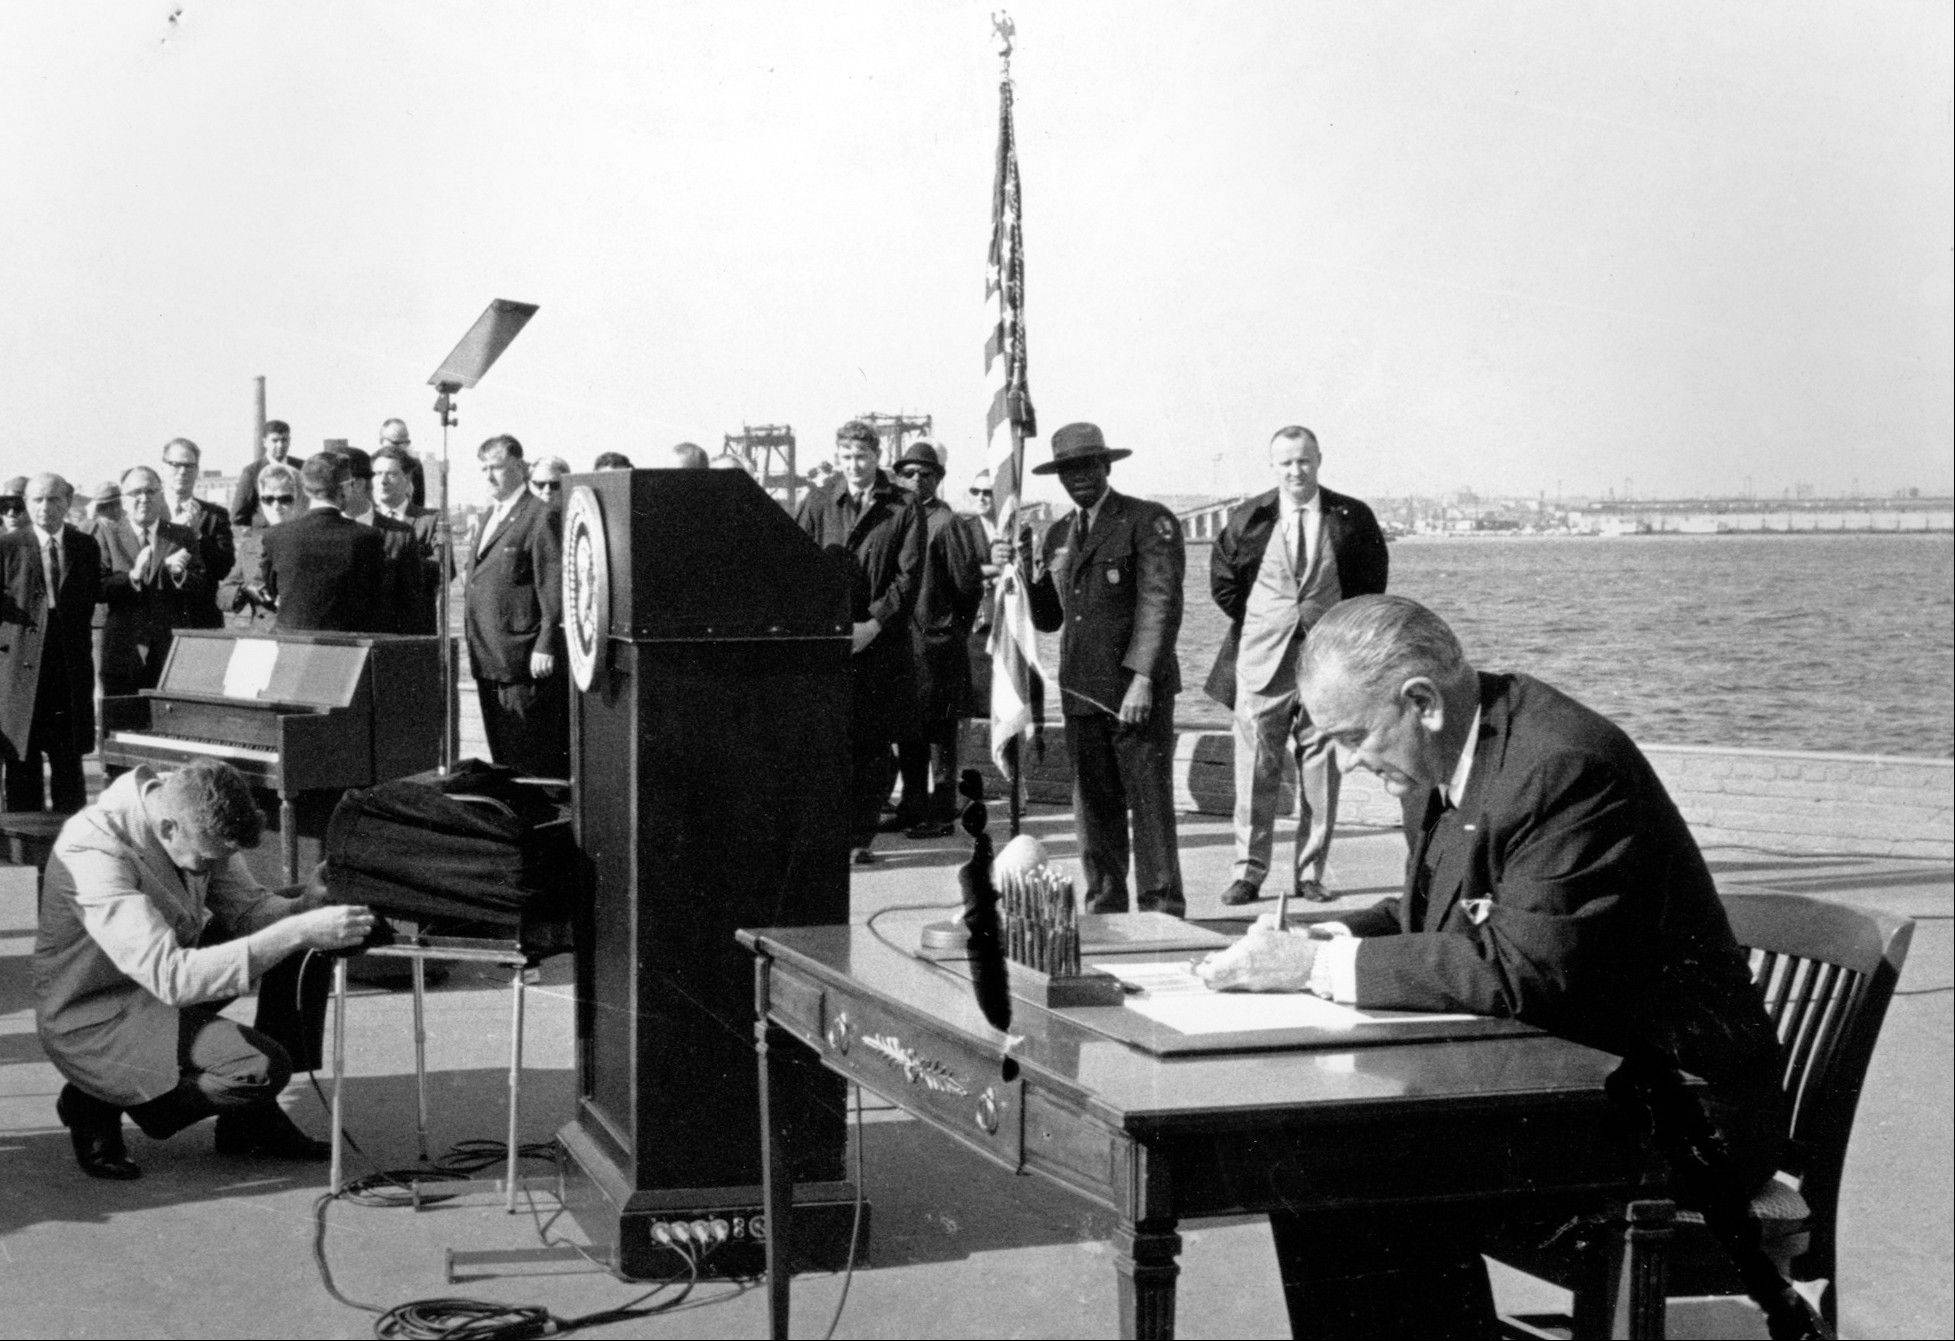 On Oct. 3, 1965, U.S. President Lyndon B. Johnson sat at his desk on Liberty Island in New York Harbor as he signed a new immigration bill. It was in 1965 that the U.S. government radically changed its immigration policy, and planted the seeds for America�s current demographic explosion, a shift that historians say happened in part because of a hunger for change and equality created by the civil rights movement.